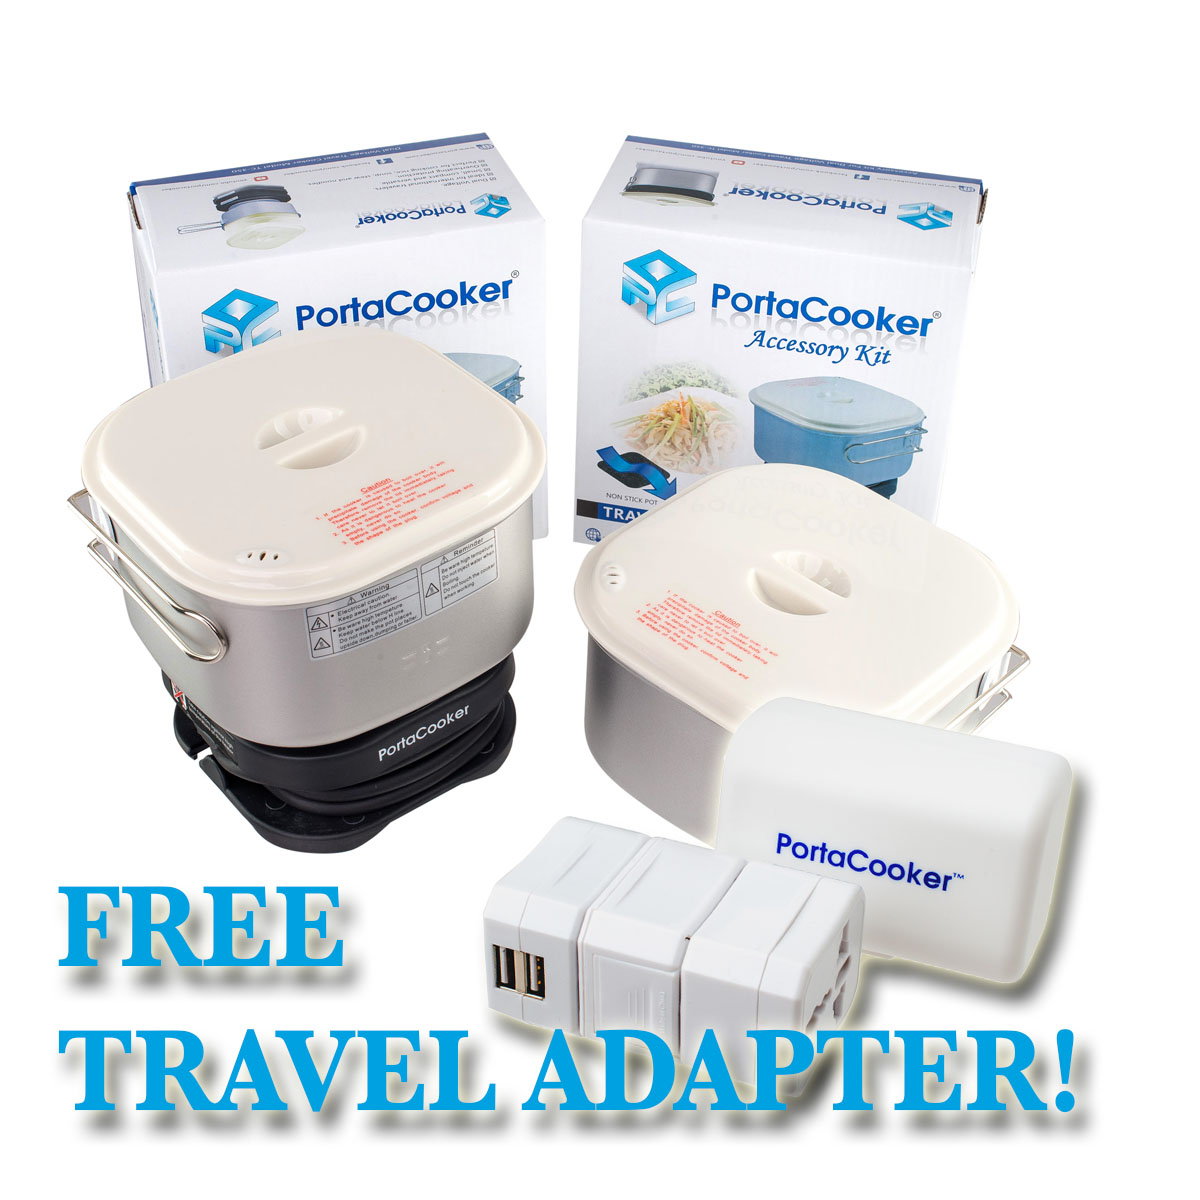 PortaCooker Travelers Kit